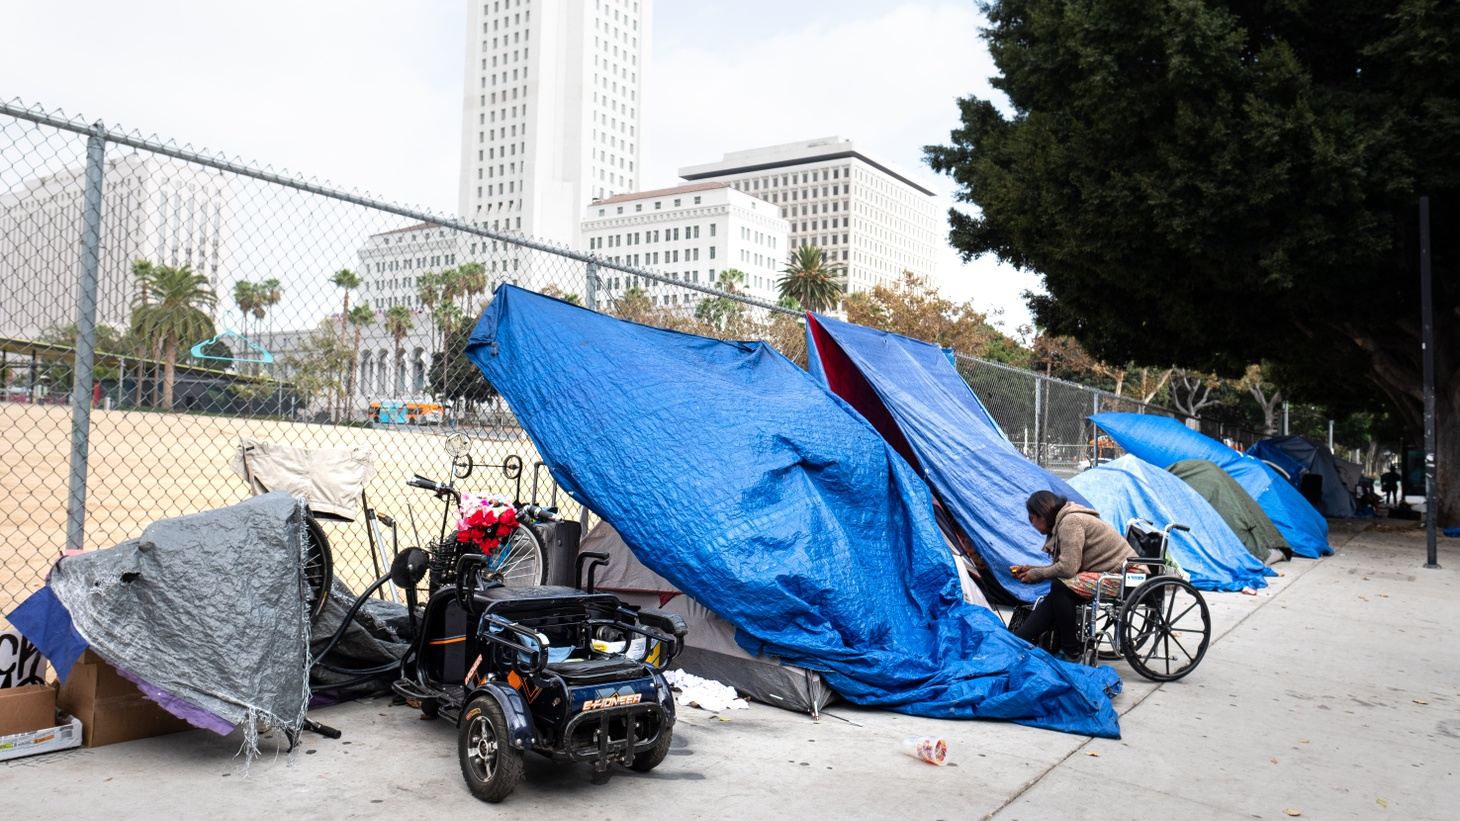 Homeless encampments are seen near LA City Hall. On March 2, 2021, LA City Council voted to approve a detailed plan allocating $88.8 million of LAPD's budget toward homeless prevention and services, policing alternatives, and council districts experiencing the highest rates of poverty and unemployment.